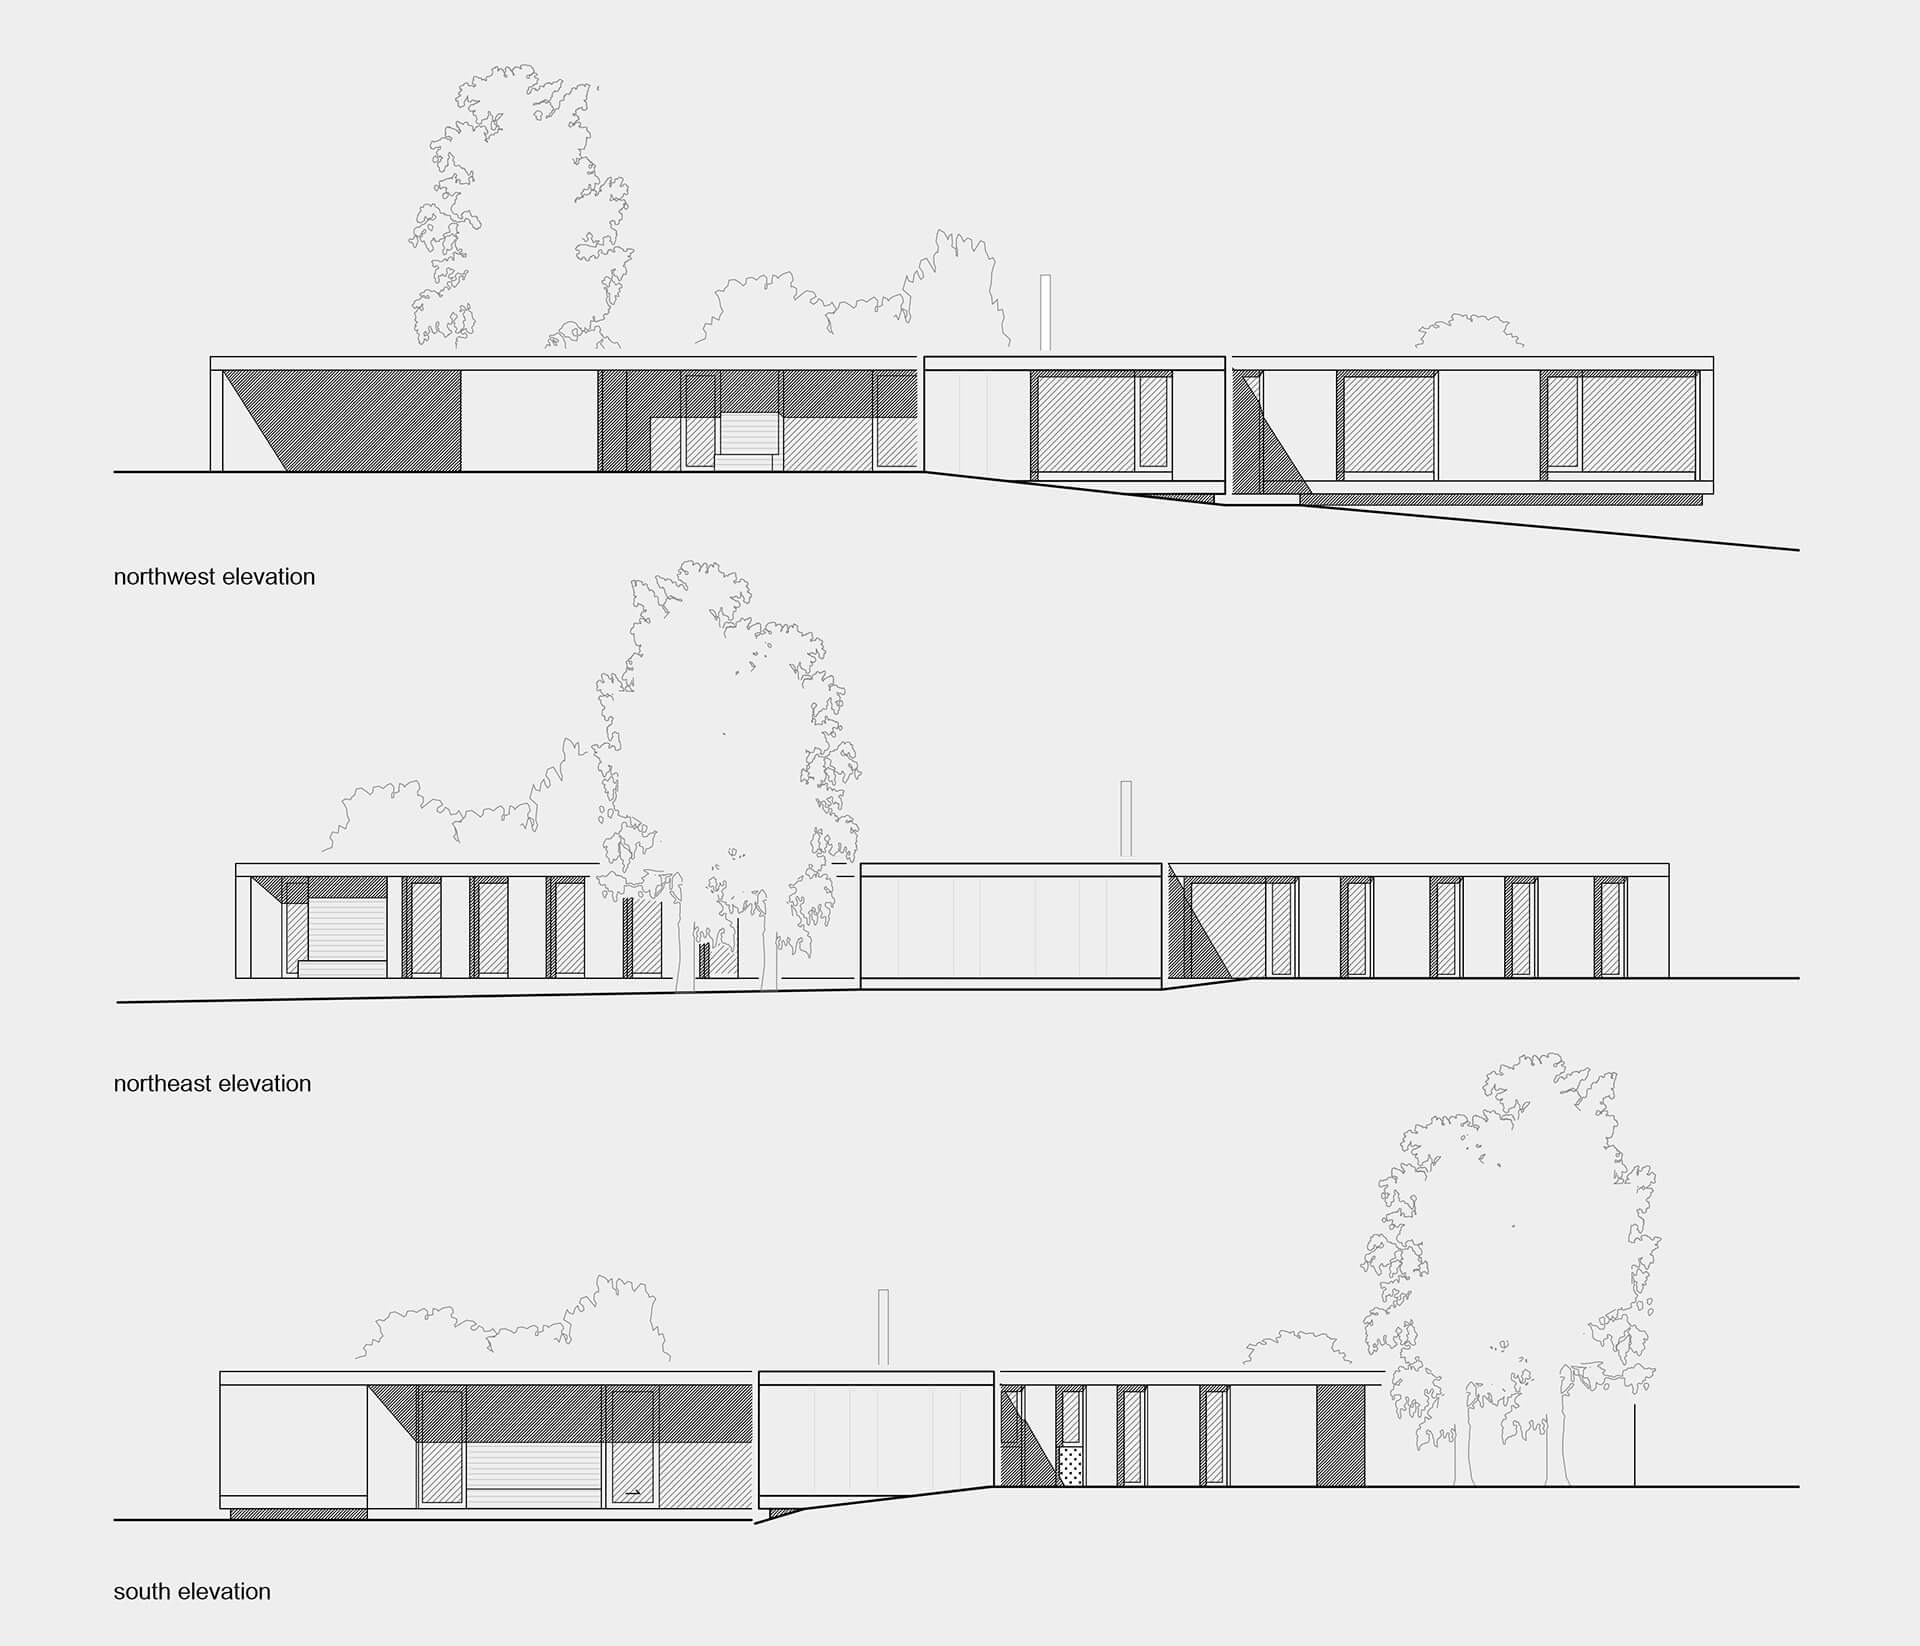 Elevations | Villa Korup designed by Jan Henrik Jansen Arkitekter with Marshall Blecher | STIRworld